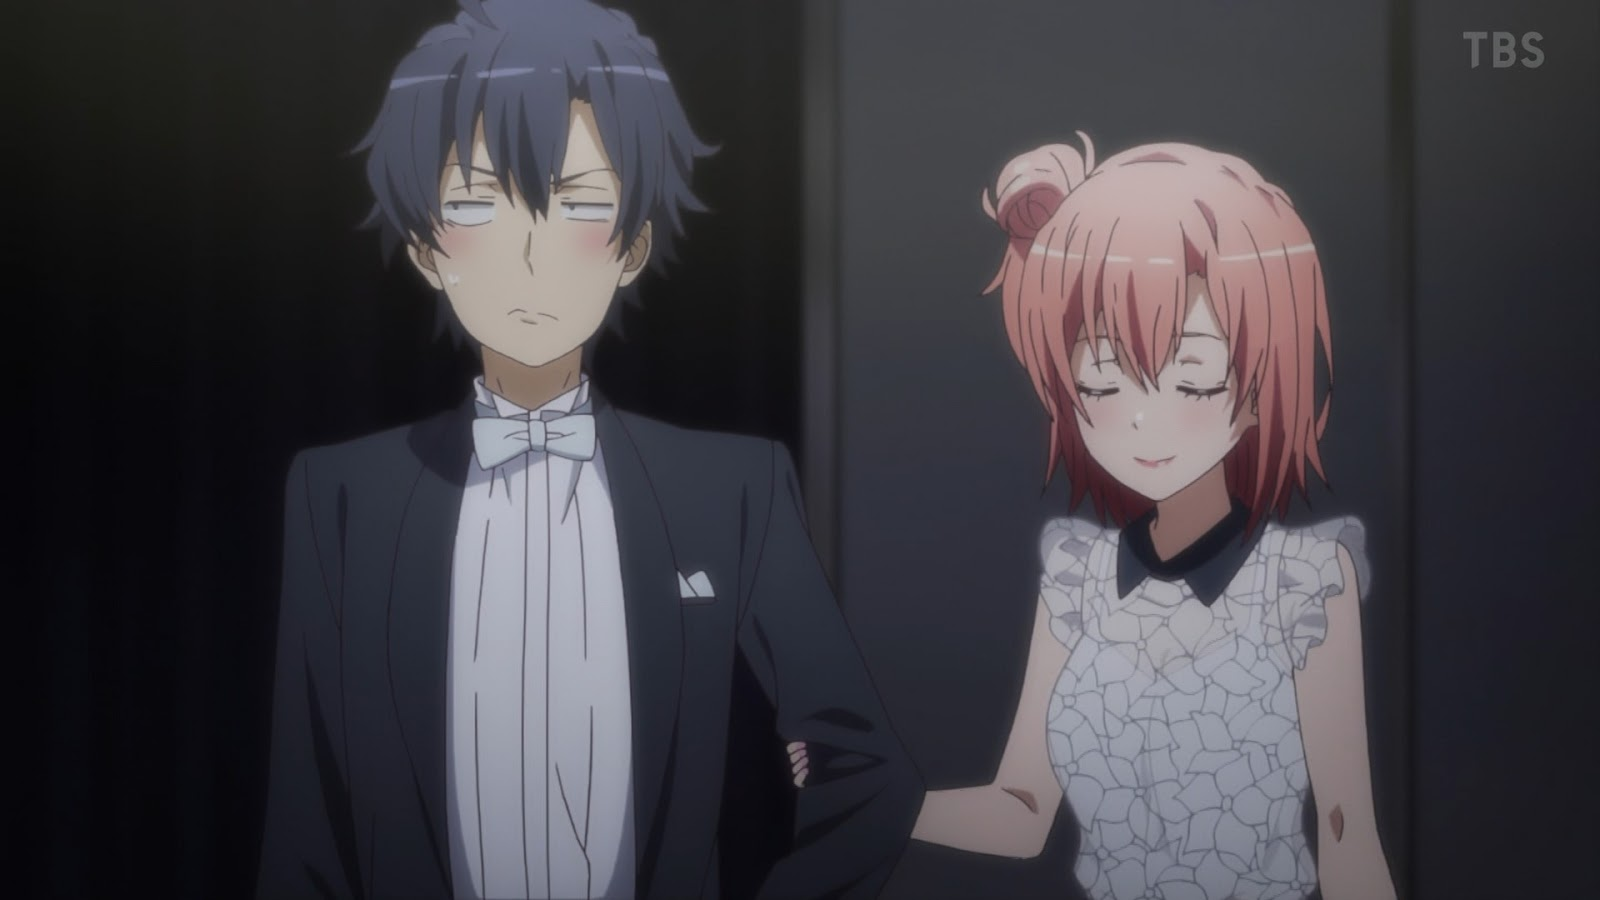 Oregairu Season 3 - Episode 3